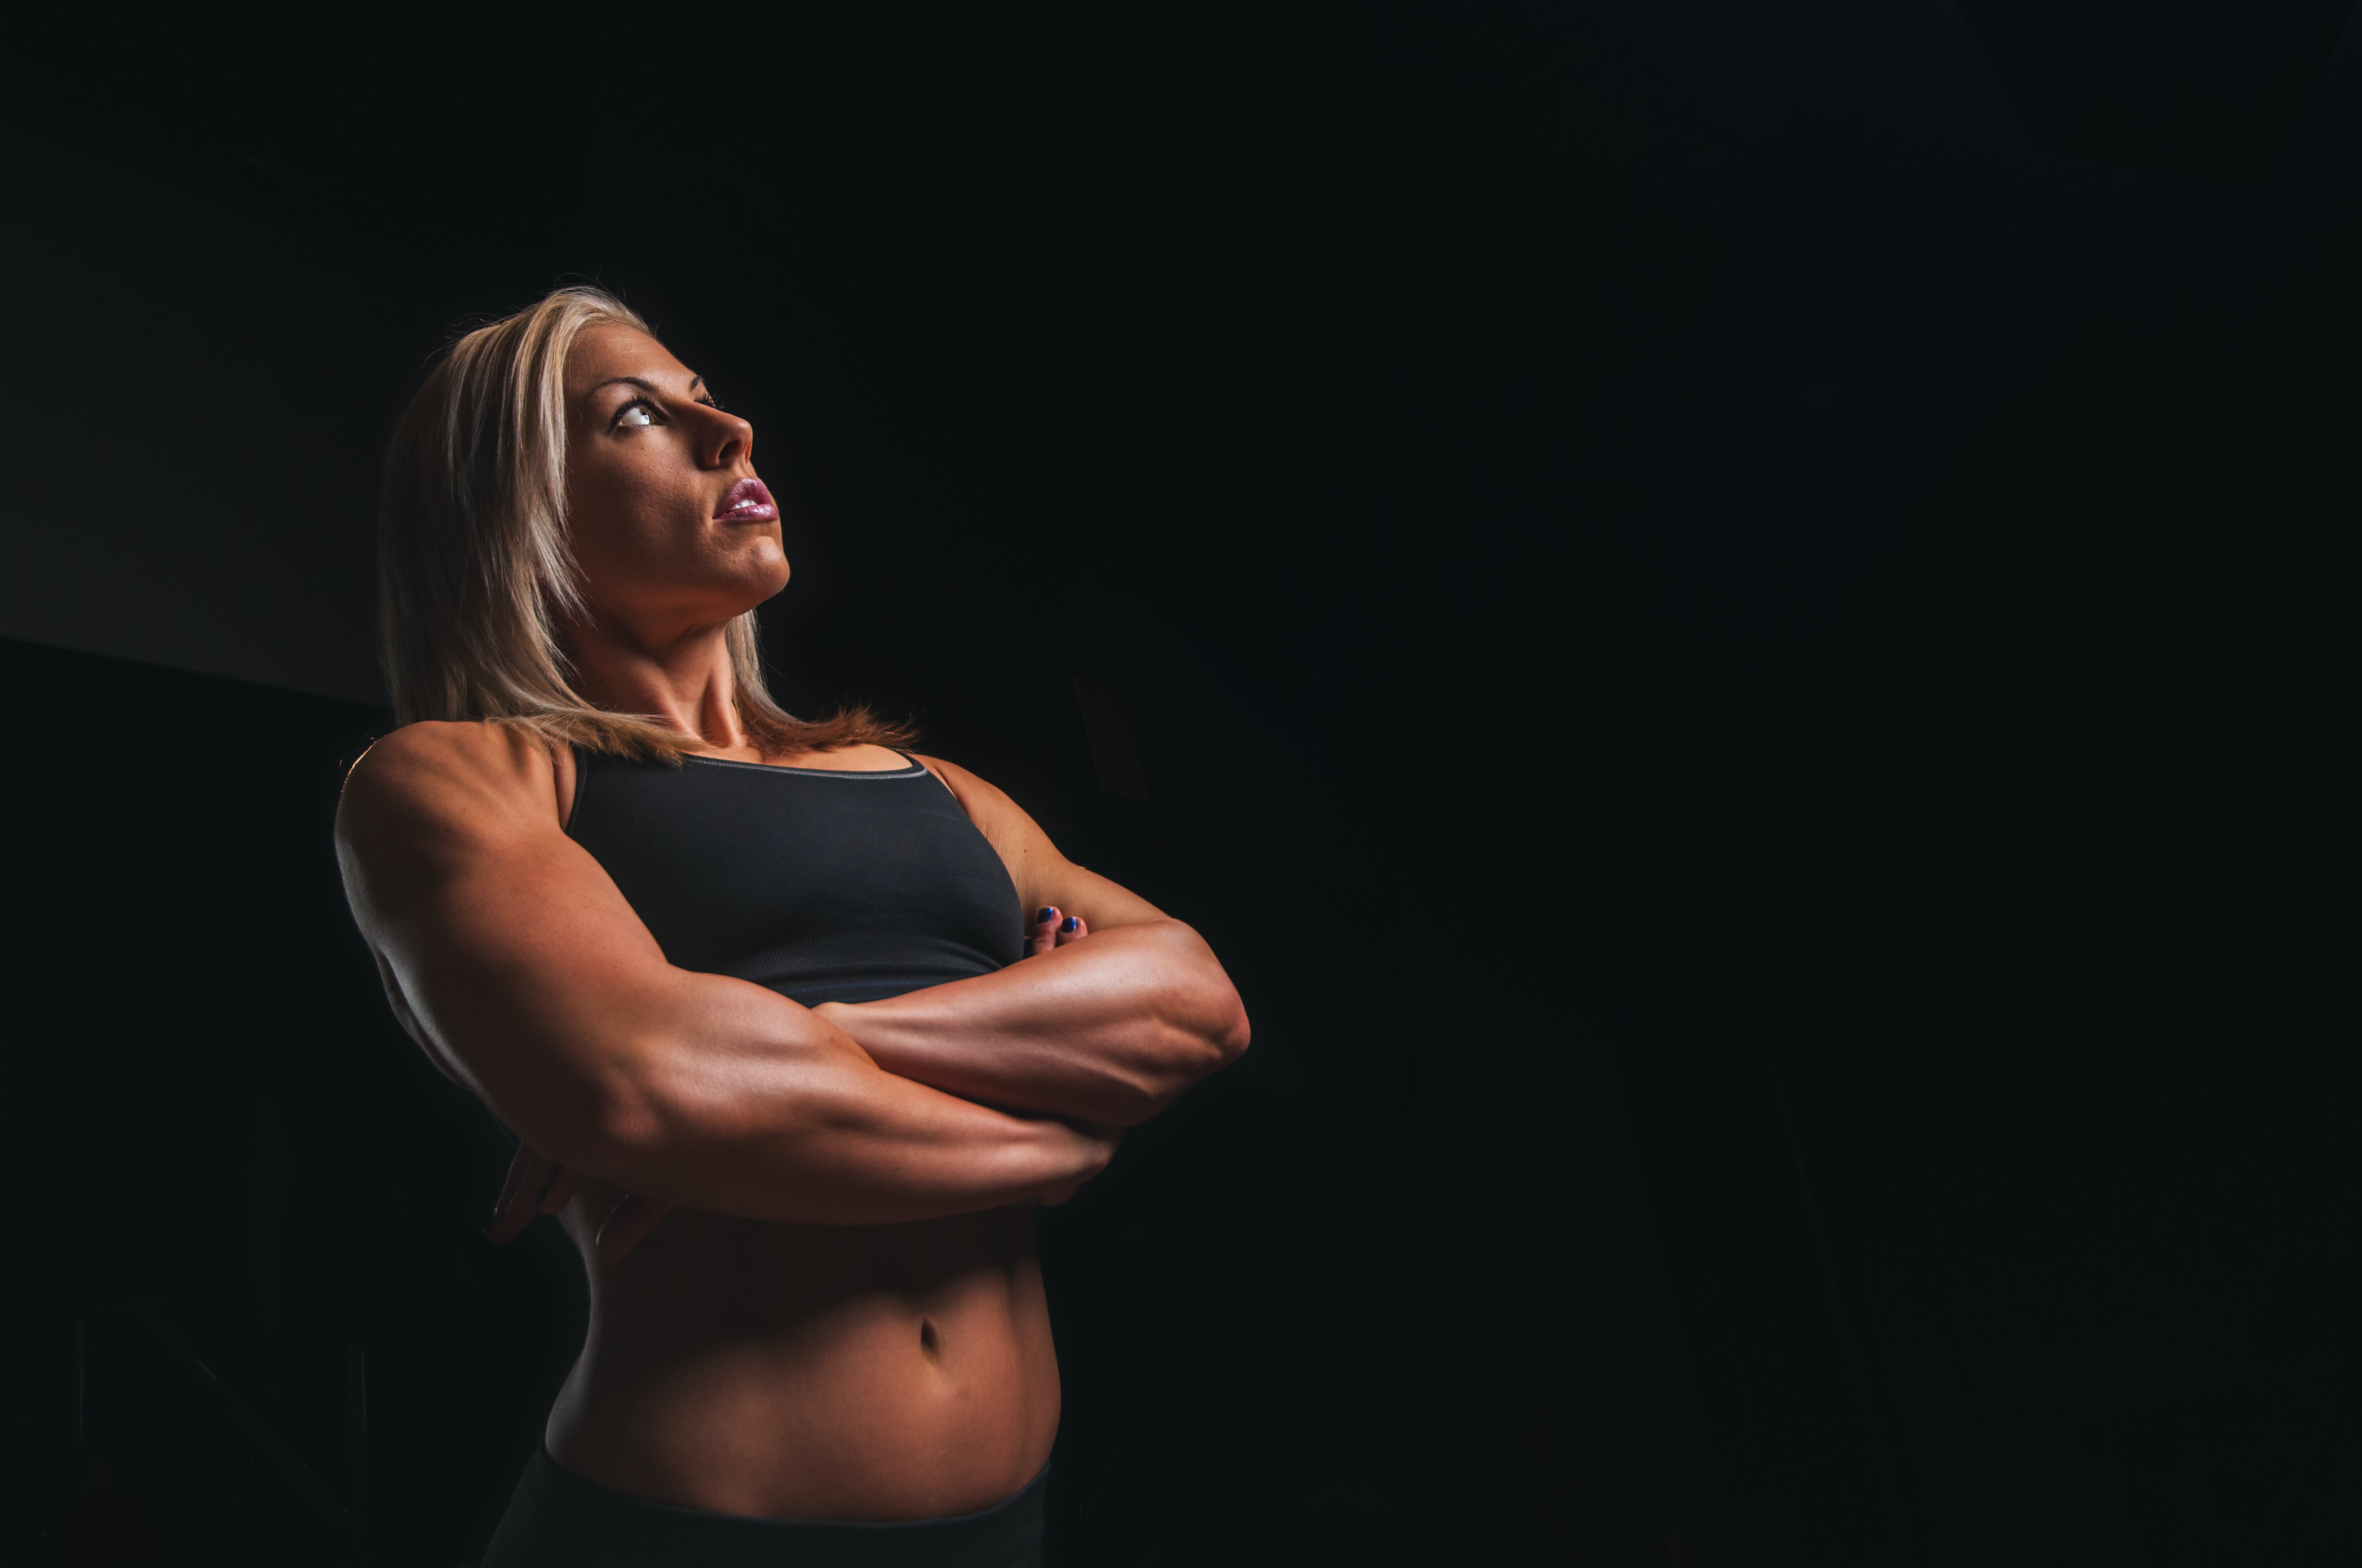 body builder woman wearing black crop-top cross armed closeup photography